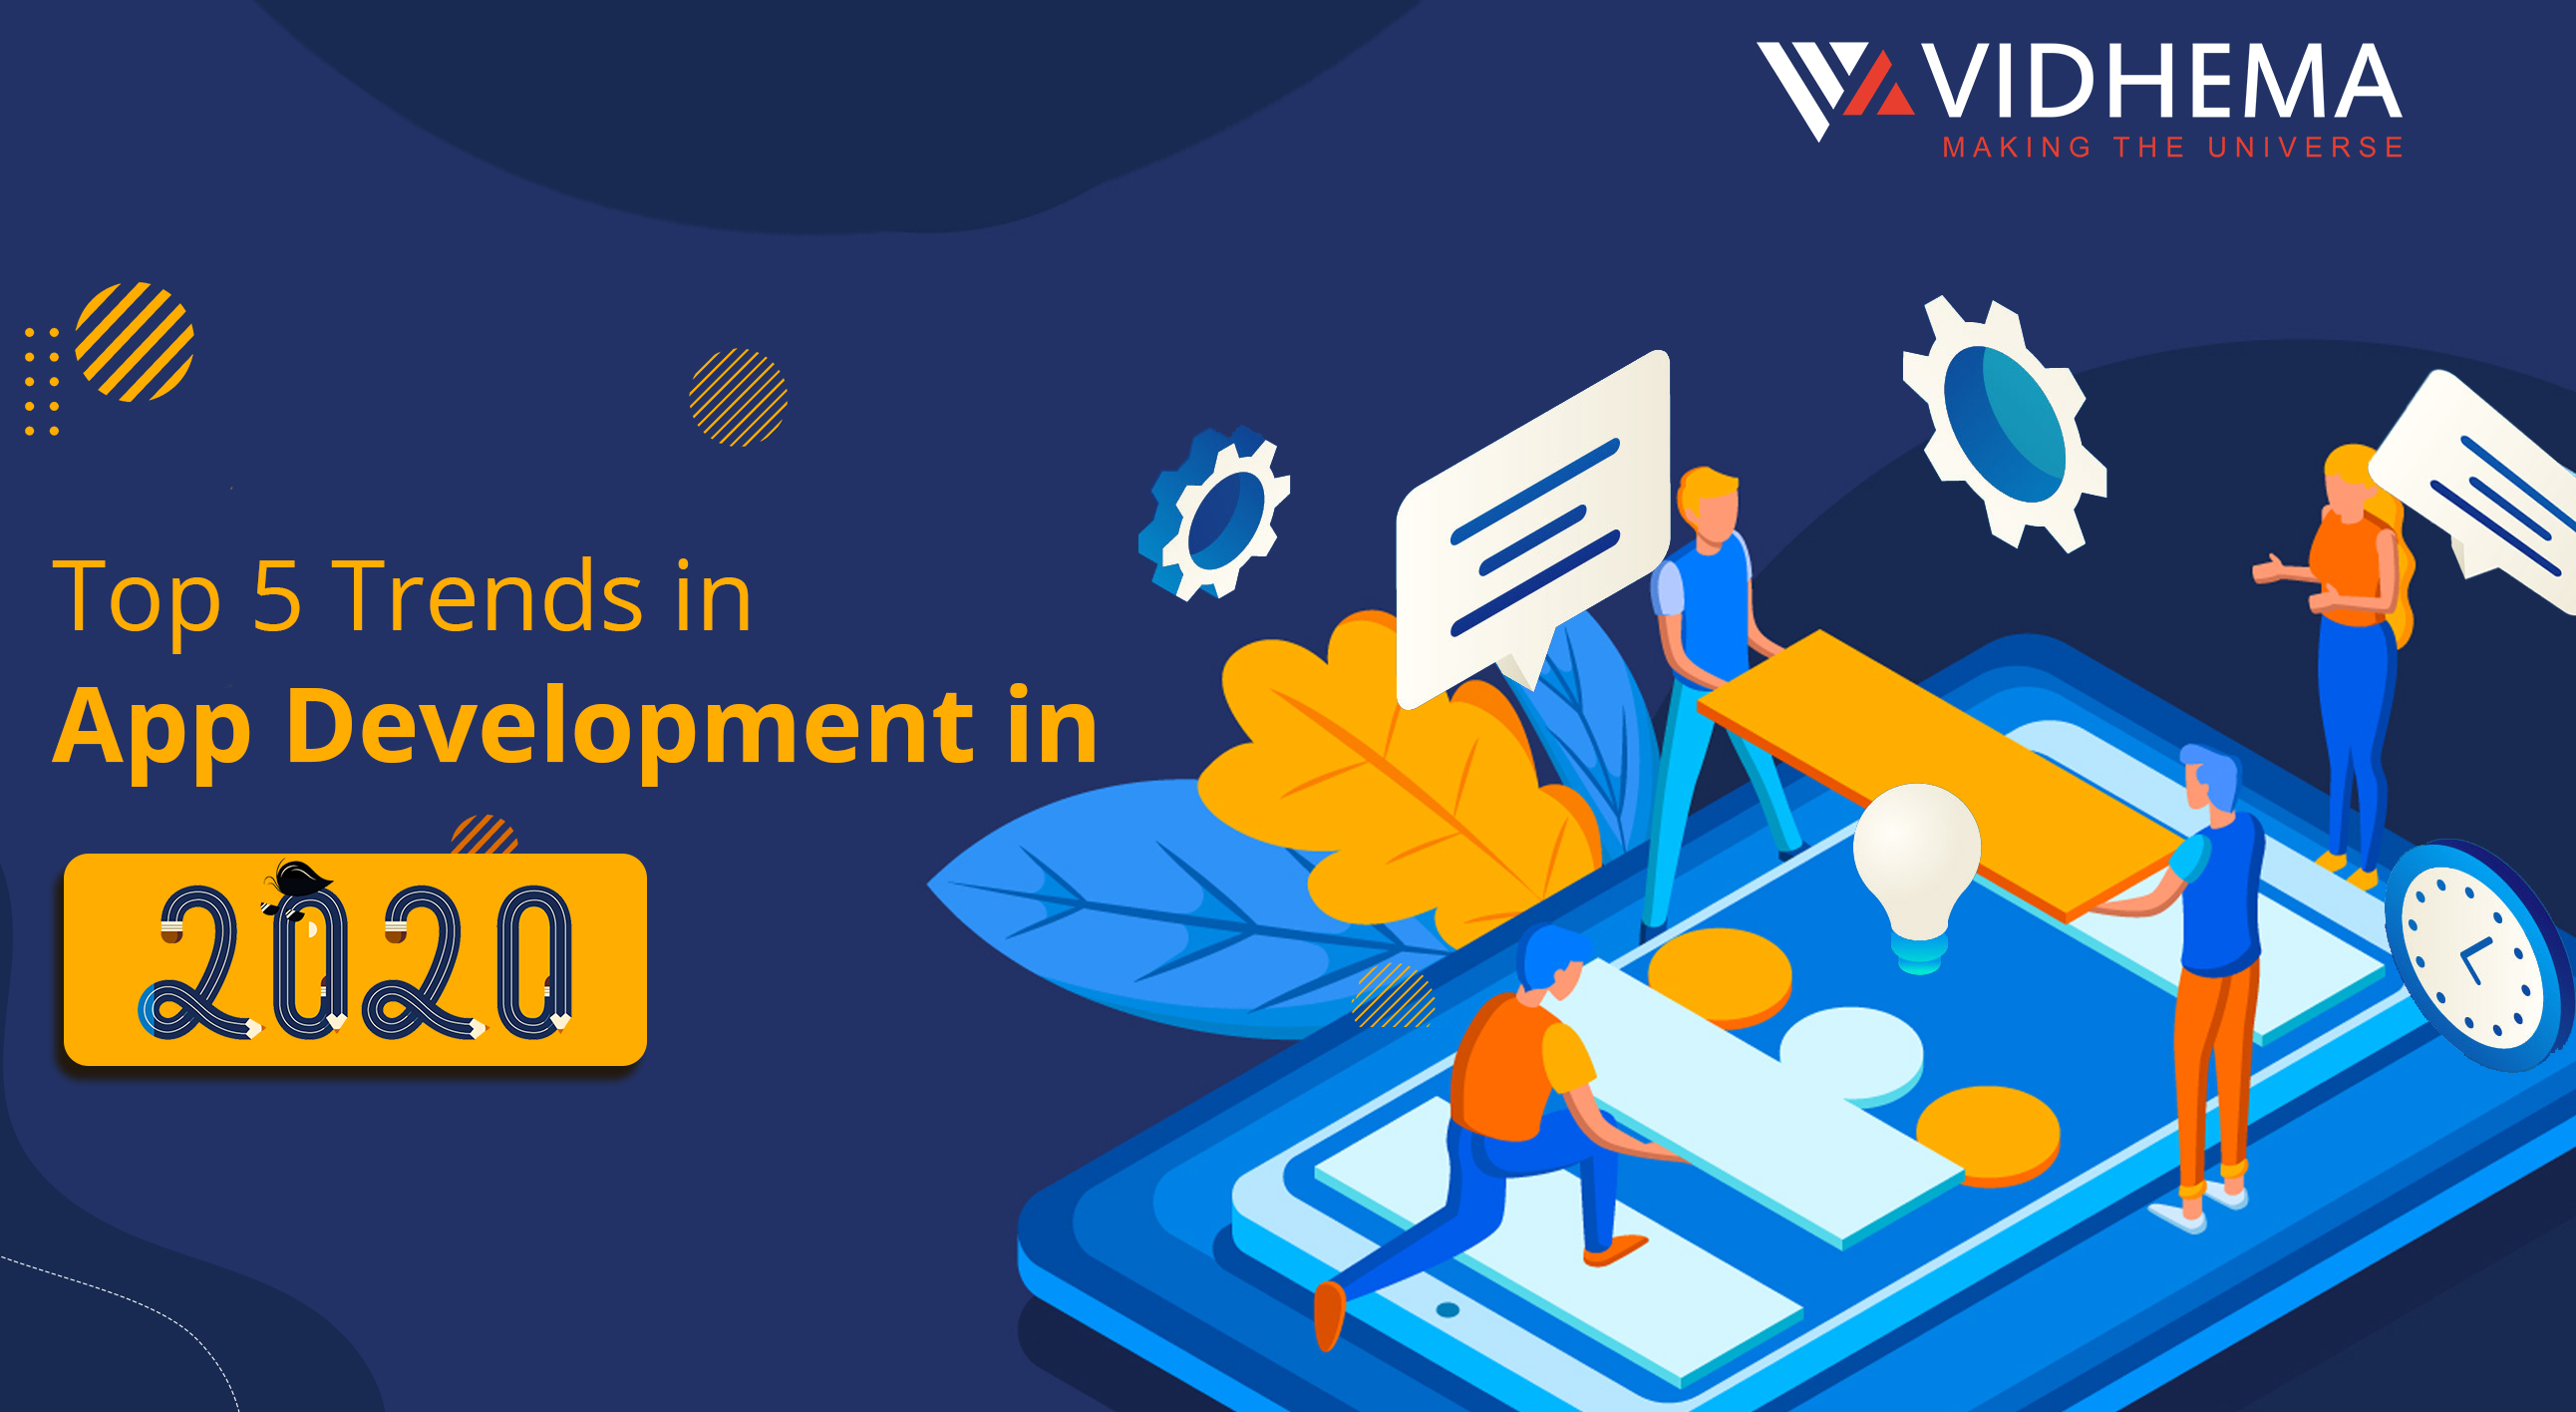 Top 5 Trends In App Development In 2020